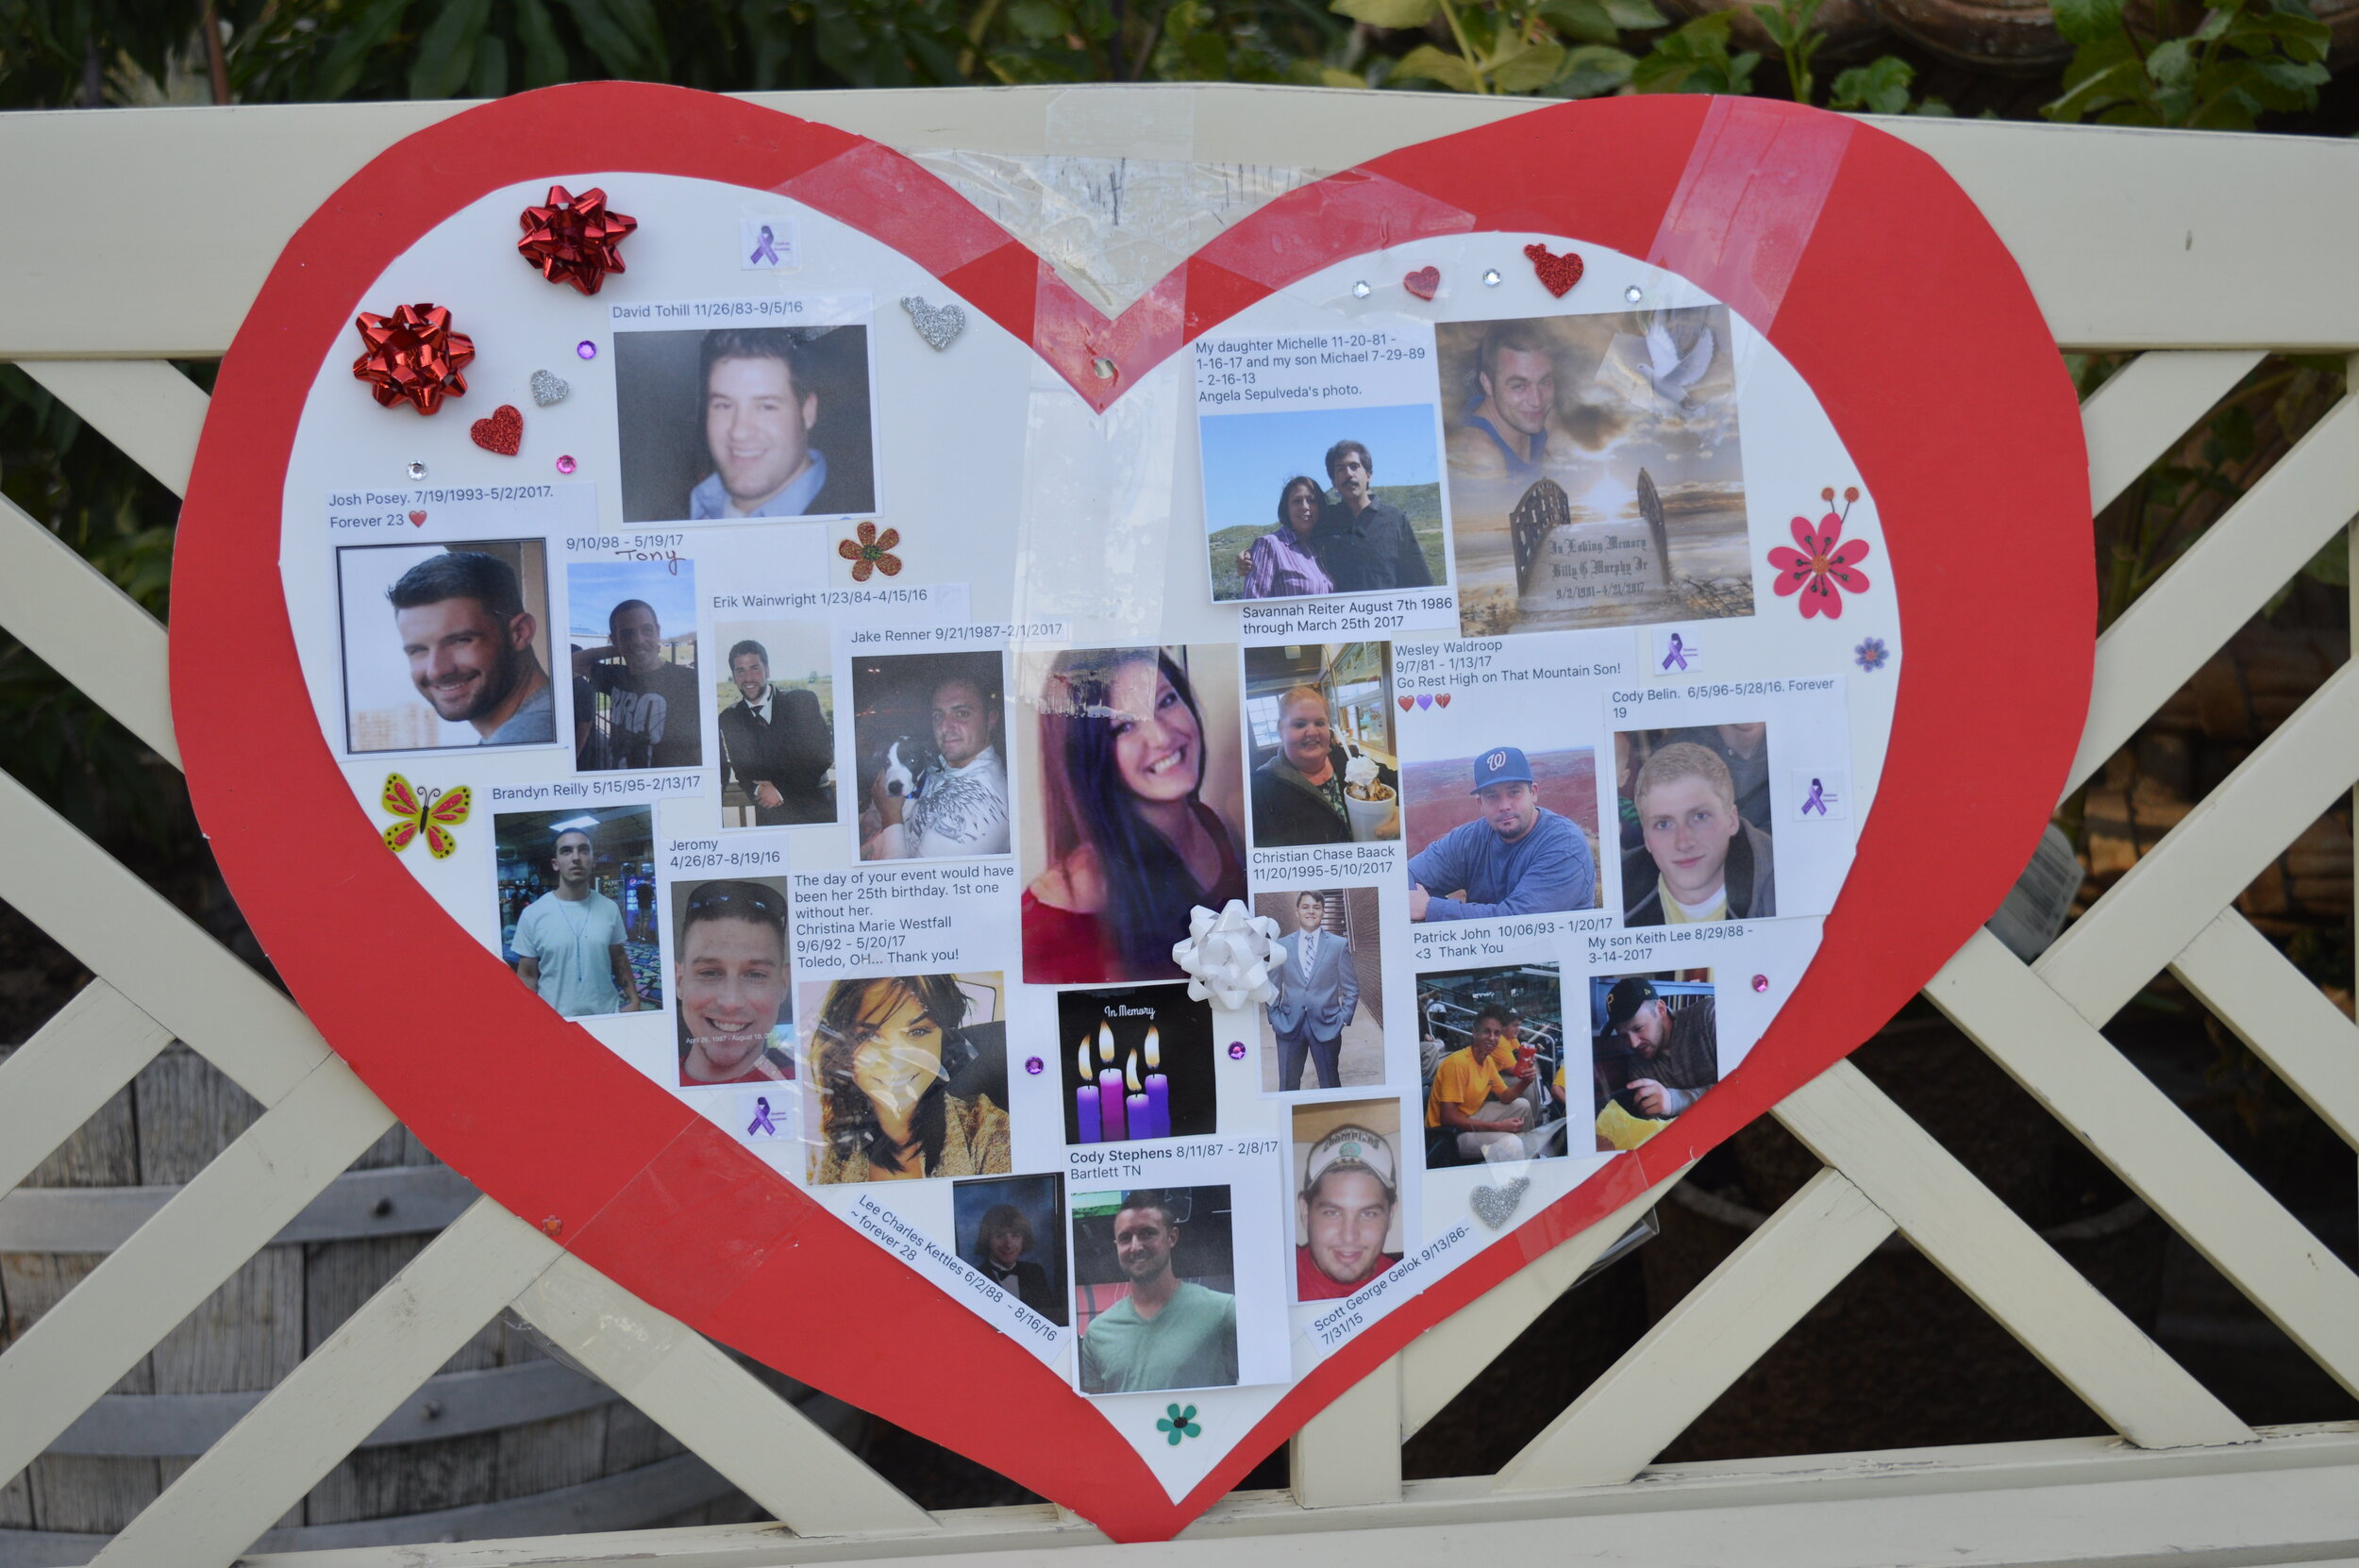 At the event, handcrafted tributes for members of the community killed due to addiction were prominently displayed.